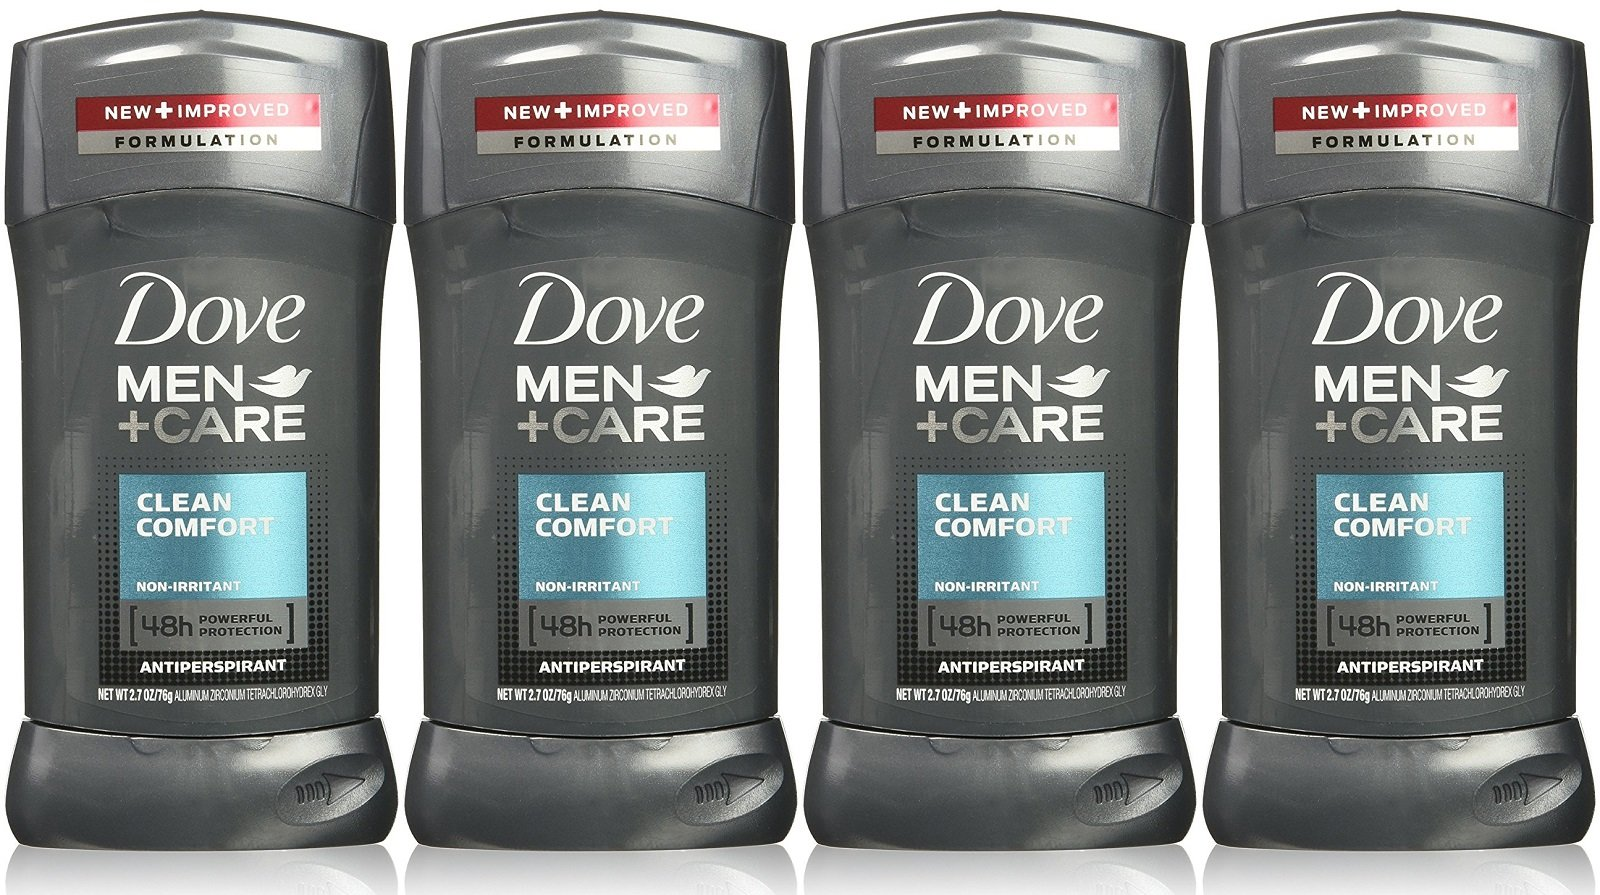 Dove Men Plus Care NonIrritant Antiperspirant, Clean Comfort, 2.7 Ounce (Pack of 4)